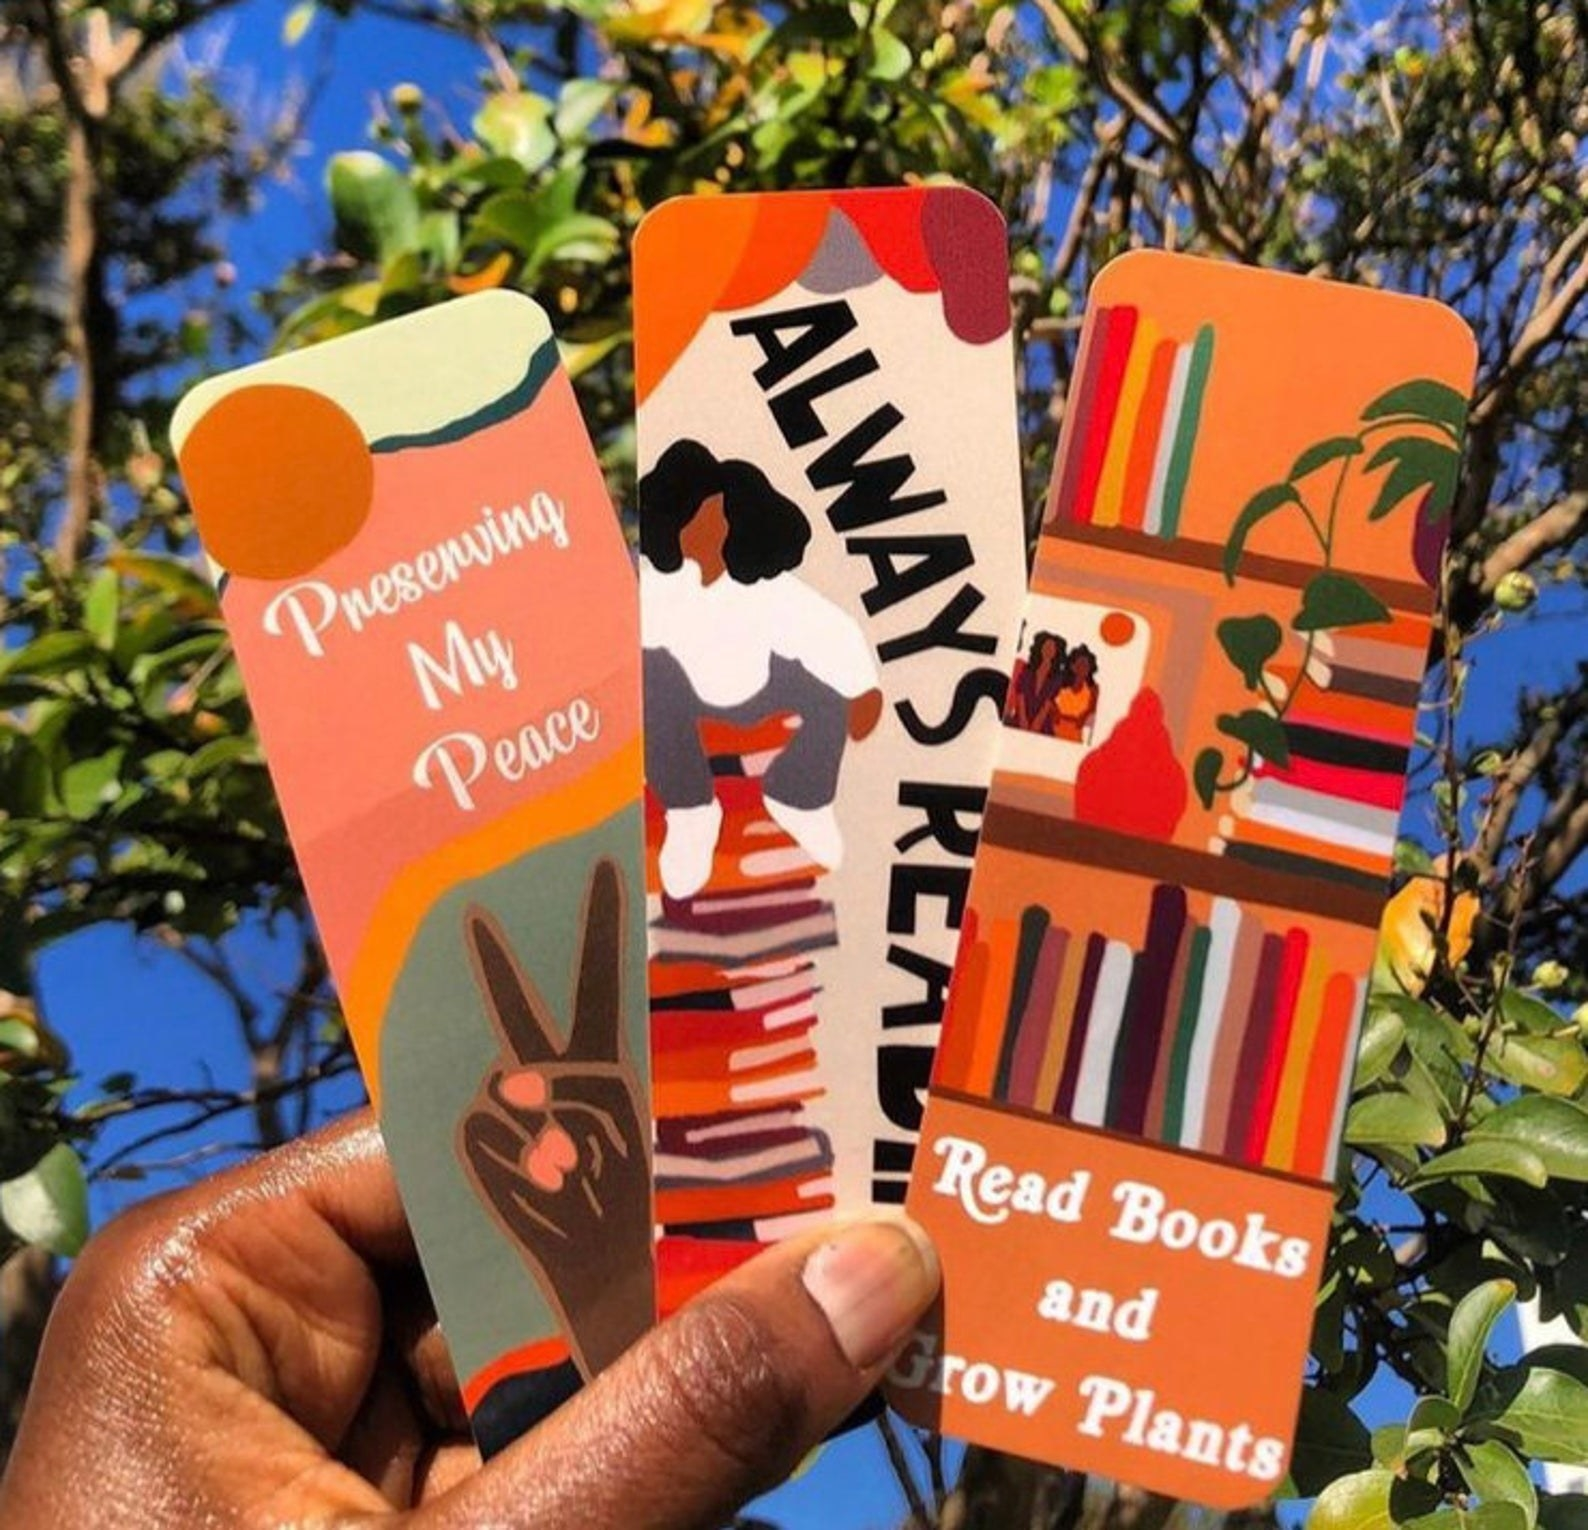 """Model's hand holding three bookmarks with bright illustrations of books and a peace sign. They say, """"Preserving my peace,"""" """"Always reading,"""" and """"Read books and grow plants,"""" respectively."""